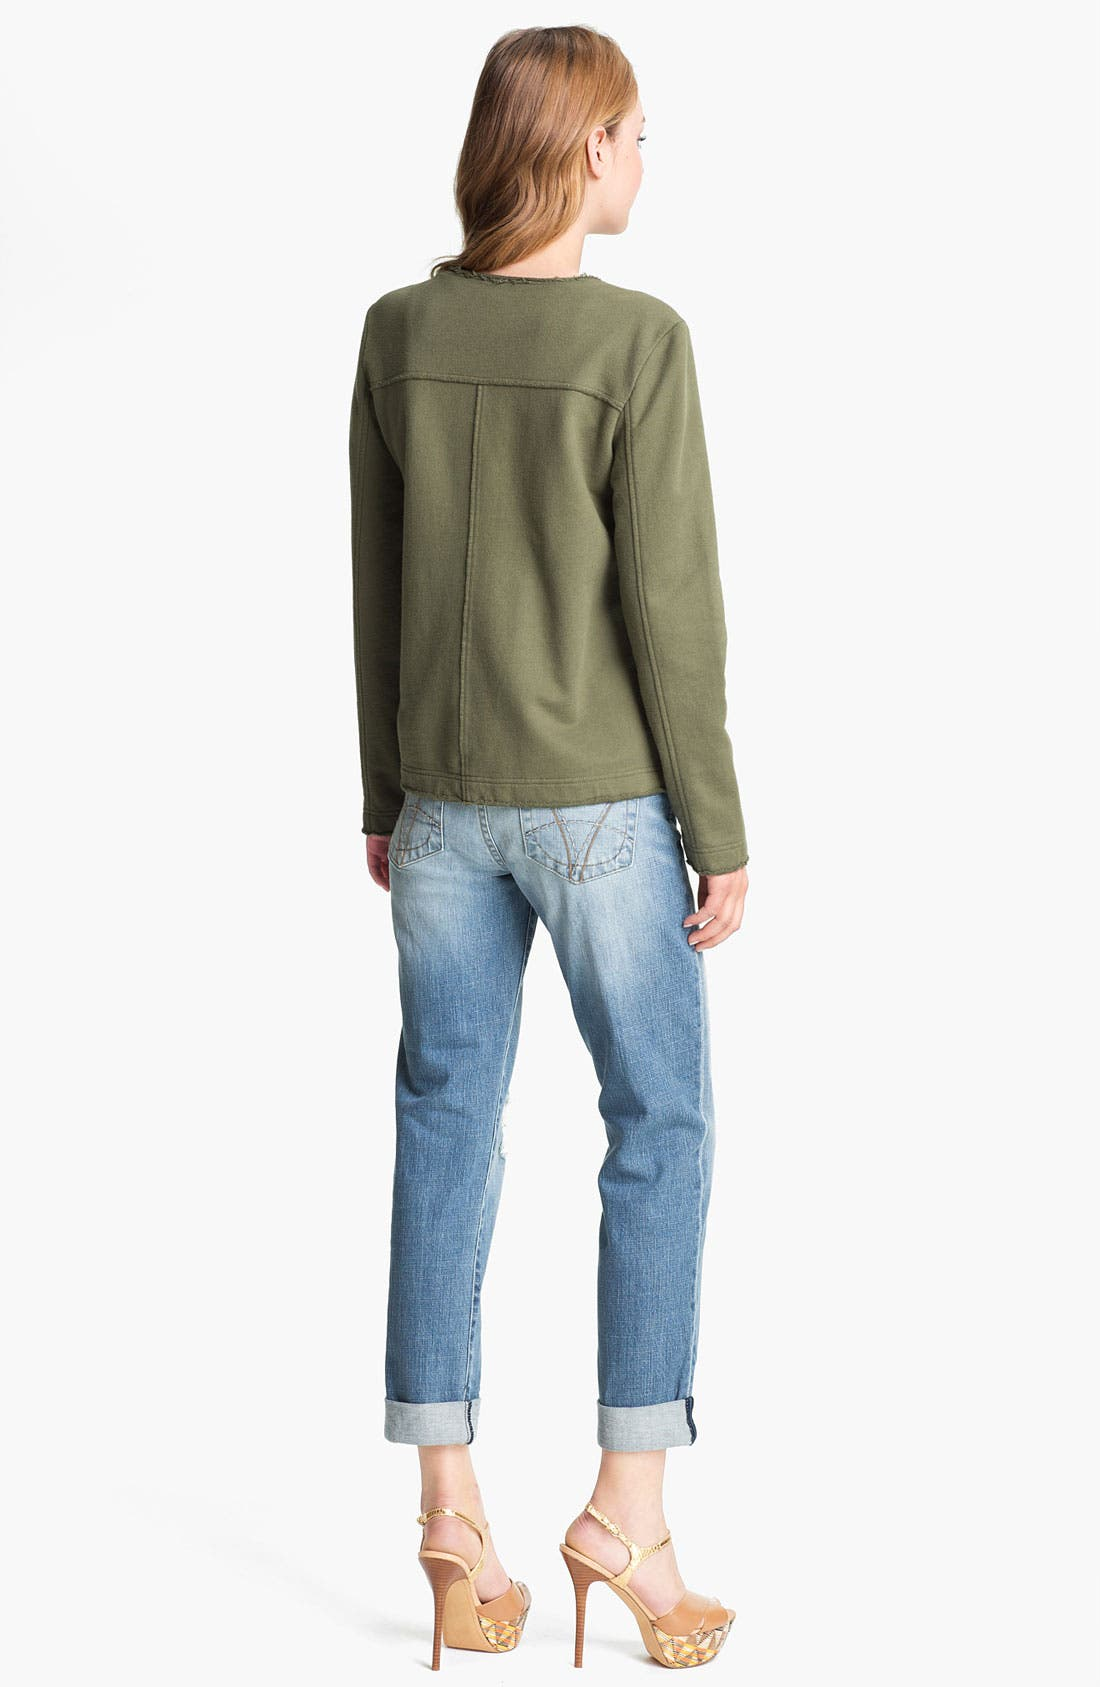 KUT FROM THE KLOTH,                             'Catherine' Distressed Slim Boyfriend Jeans,                             Alternate thumbnail 4, color,                             400